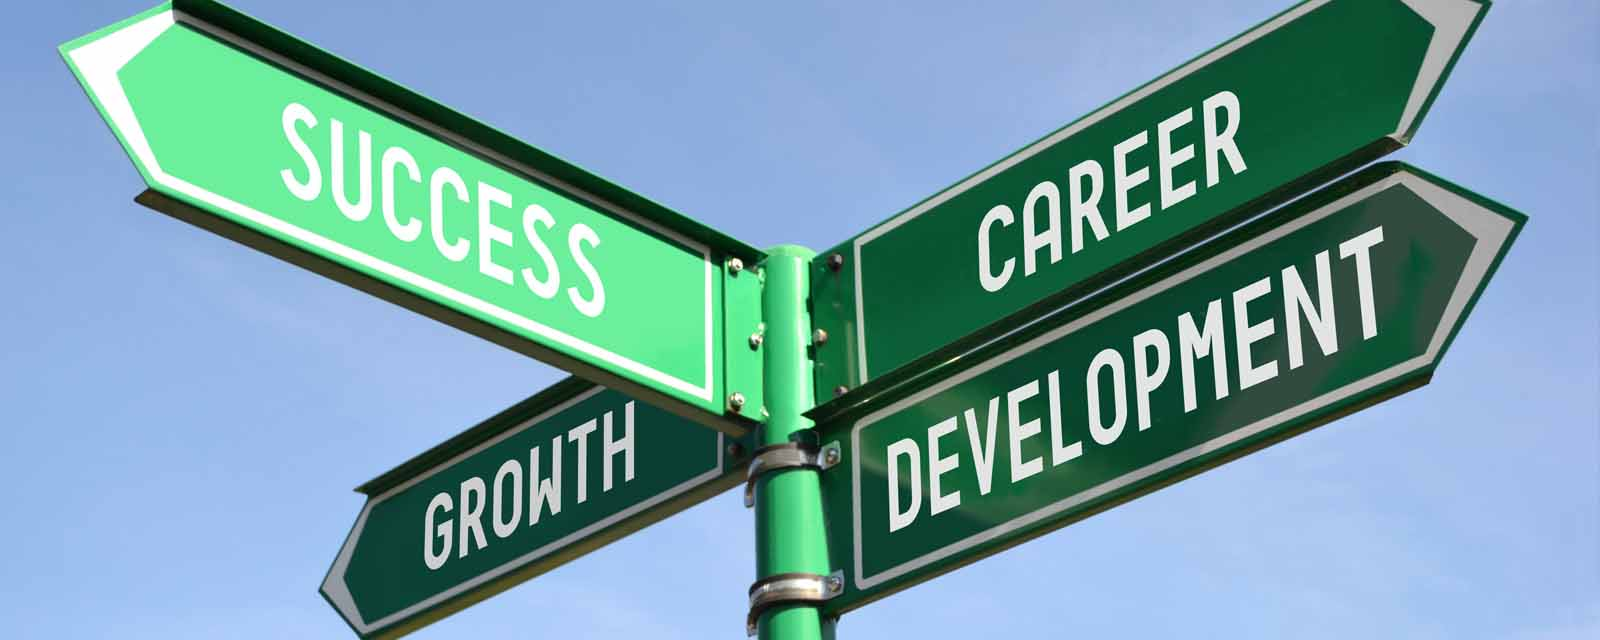 Can A Career Counselor Make A Difference?